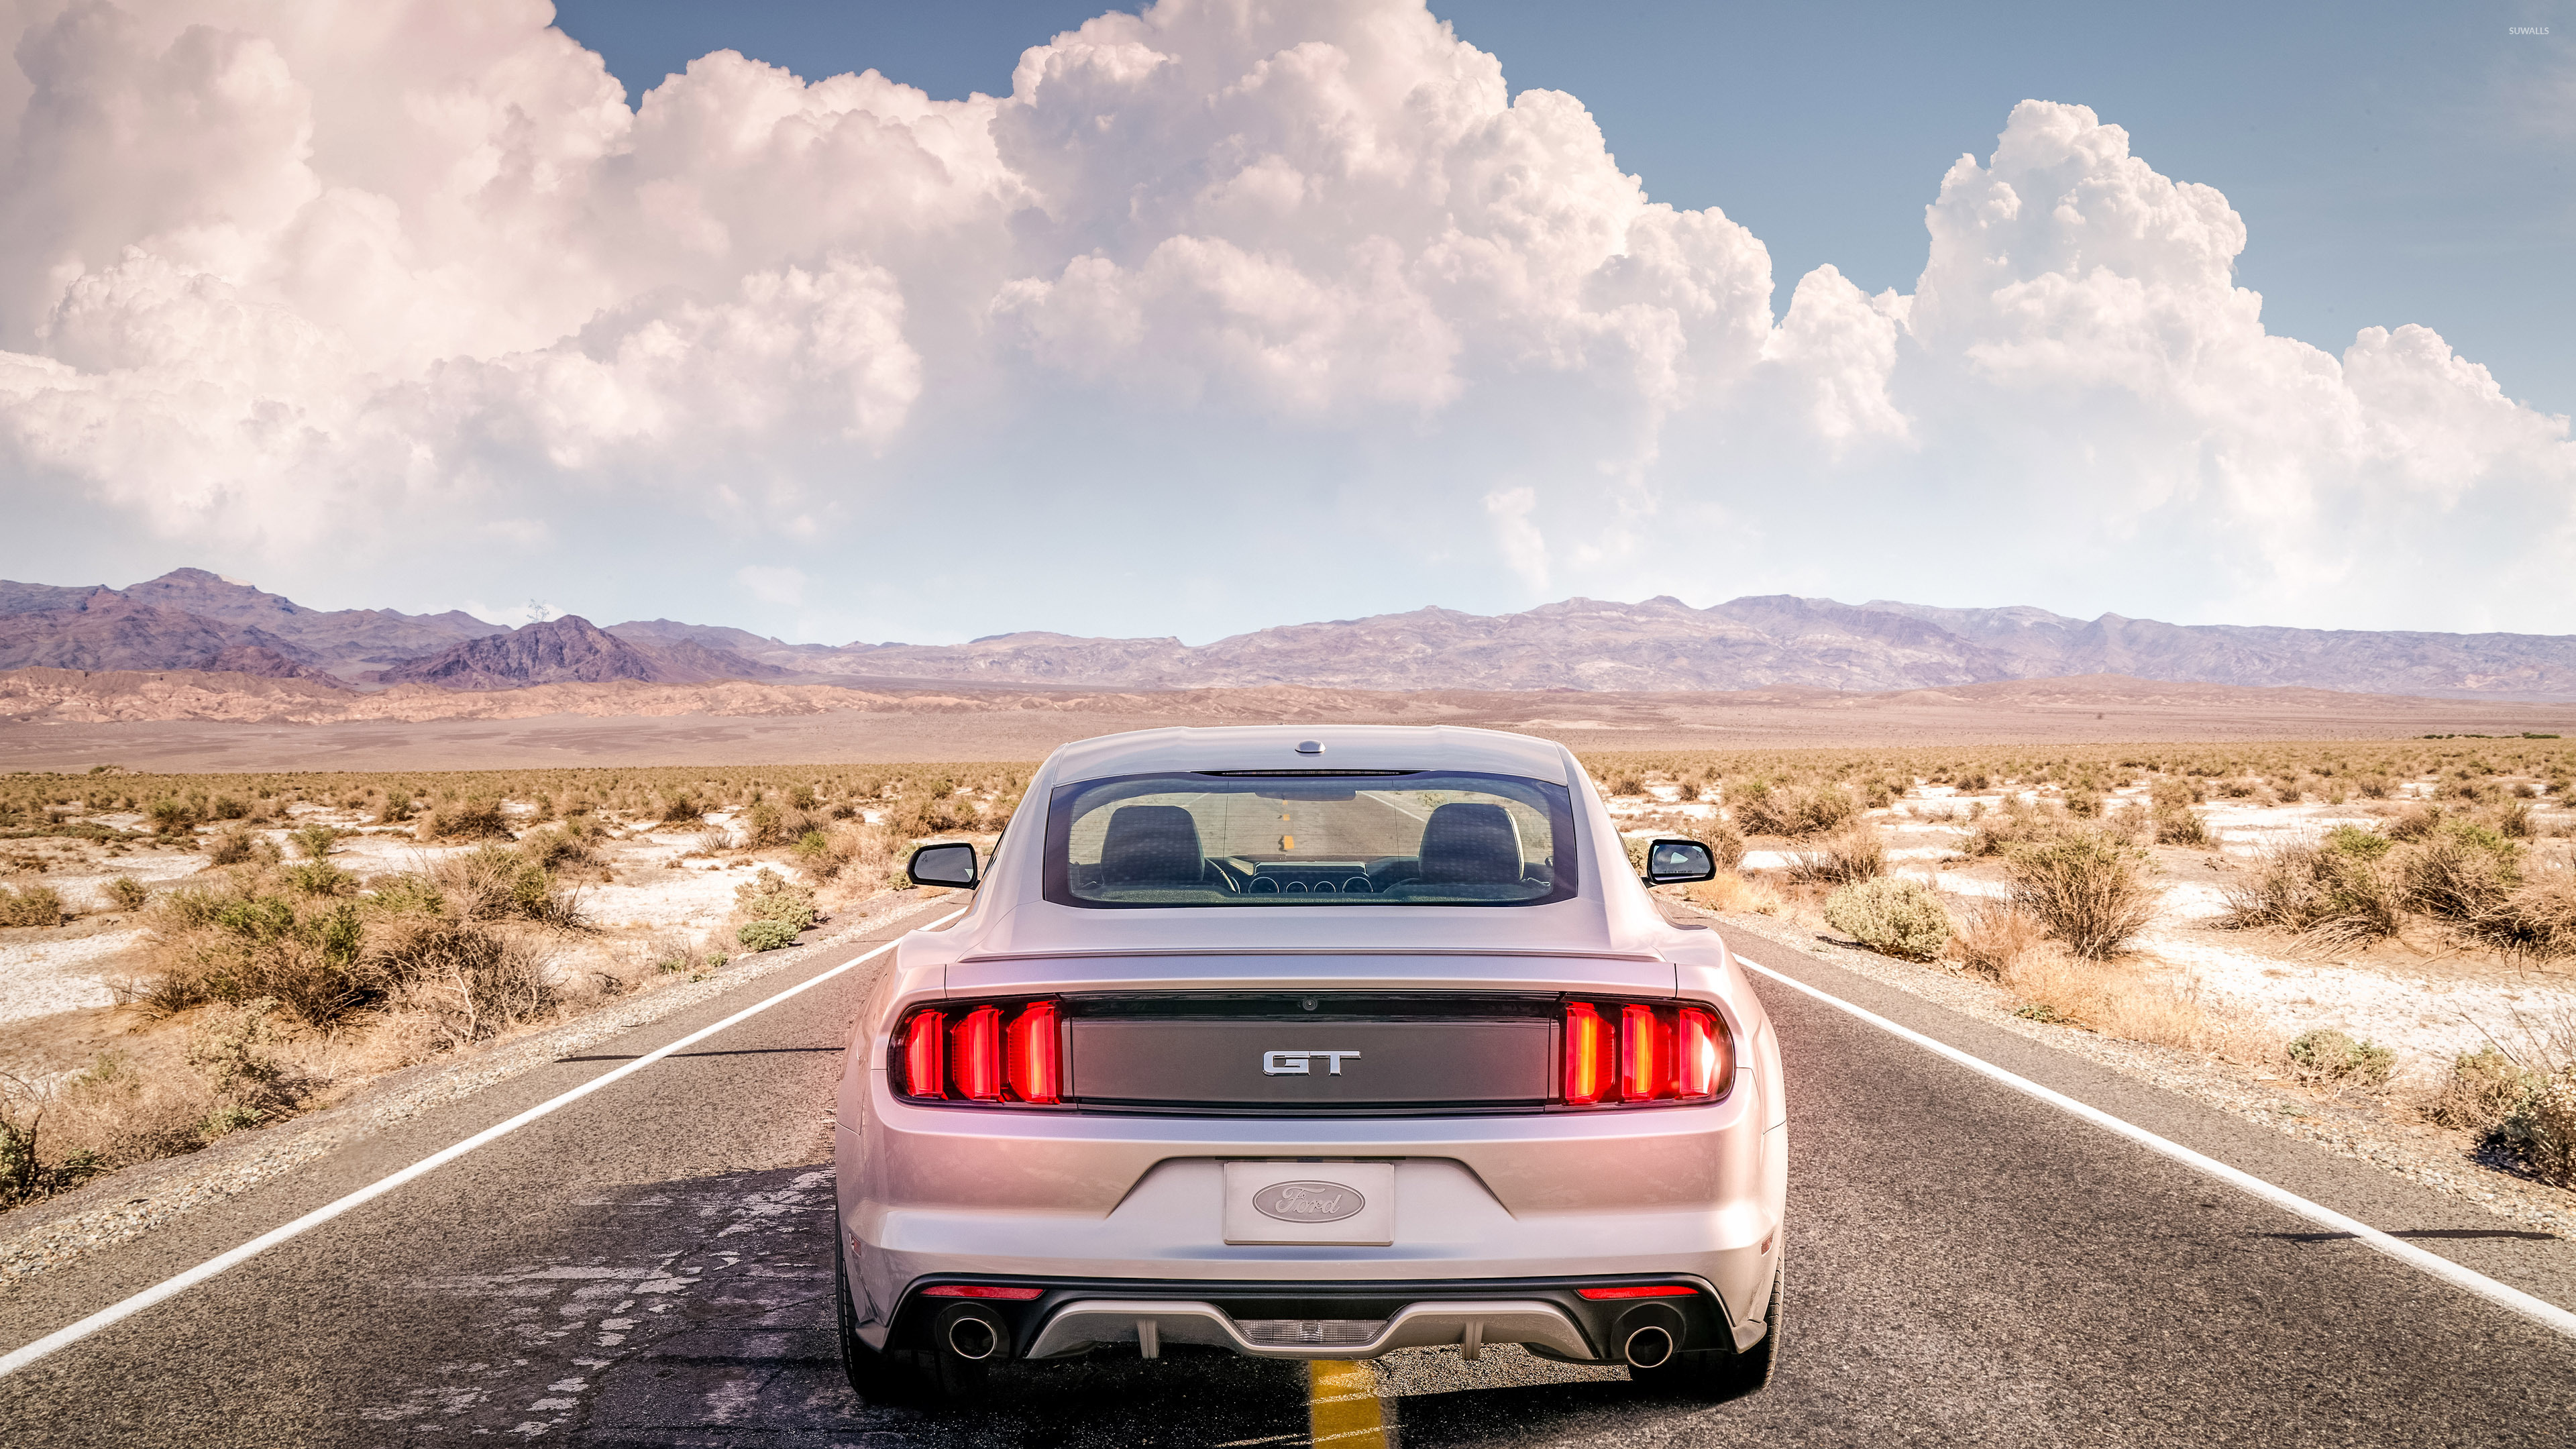 Ford Mustang GT [4] wallpaper